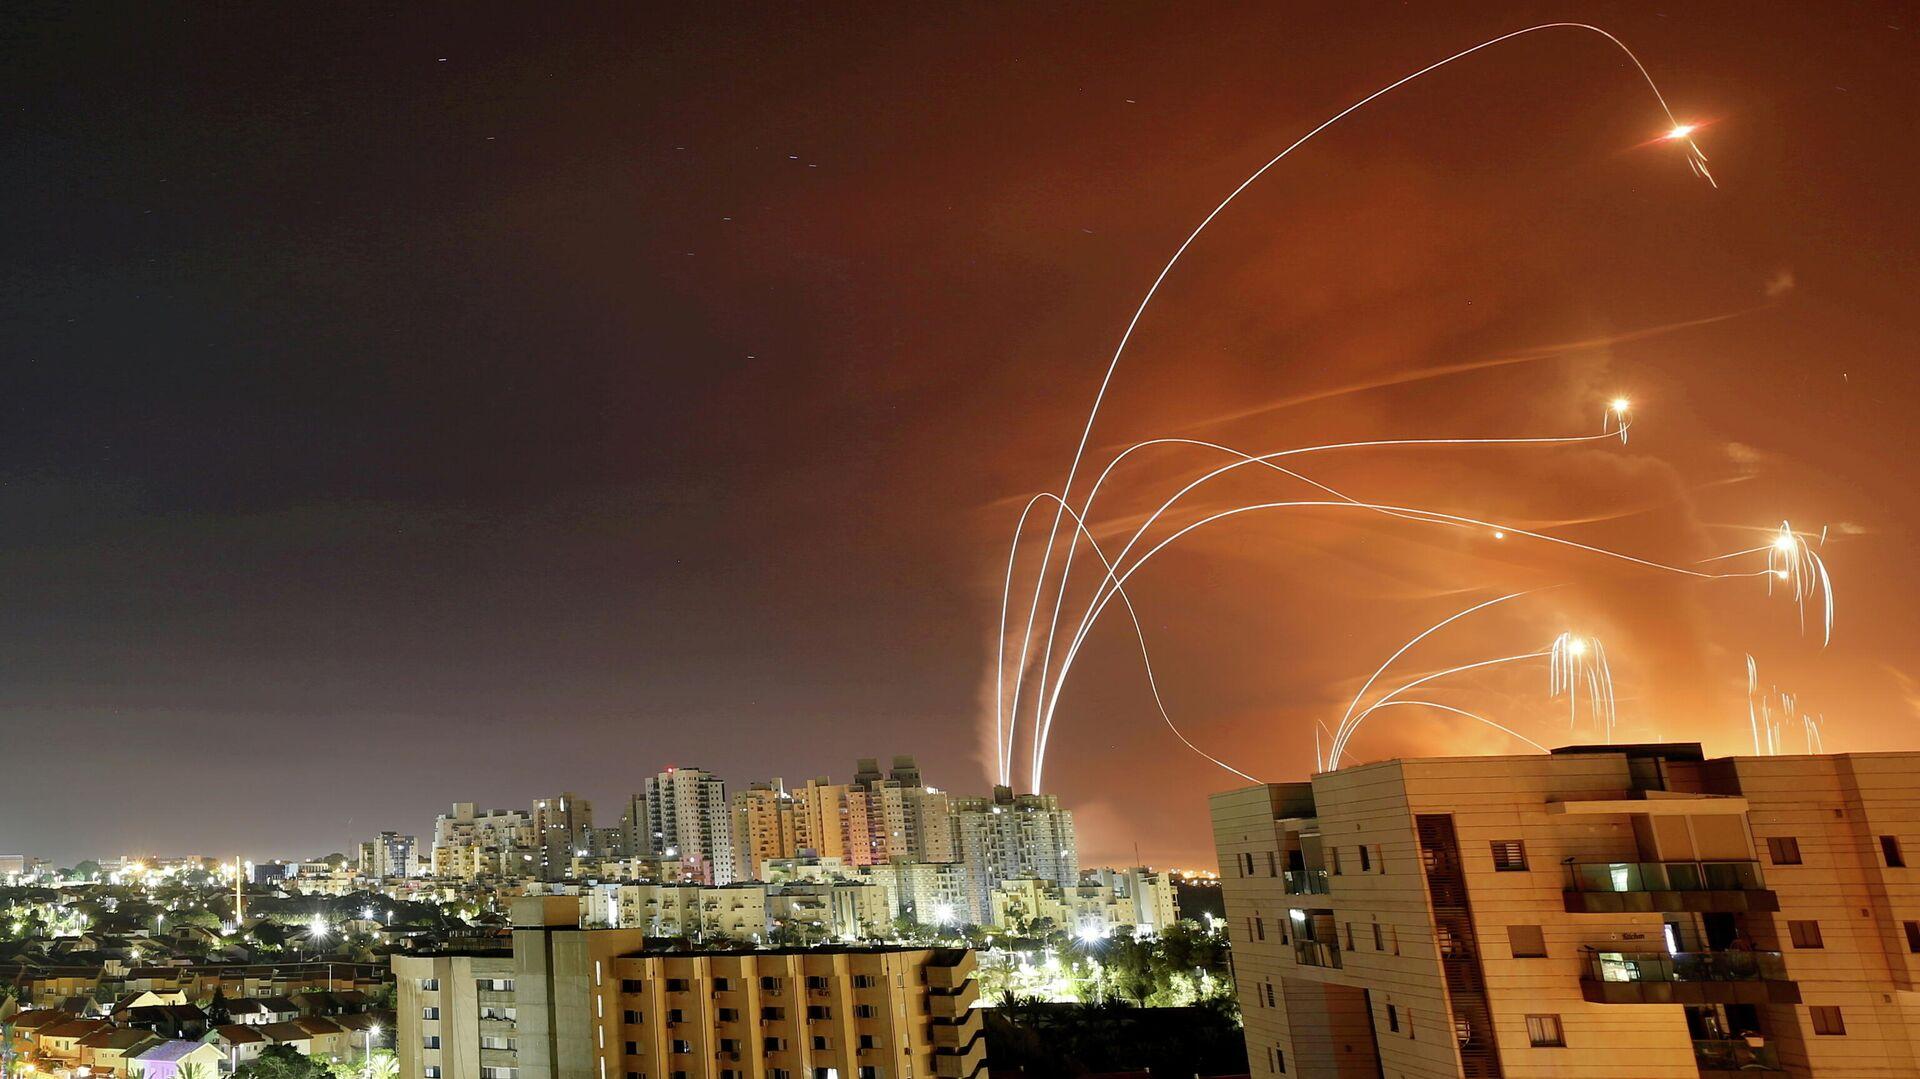 Streaks of light are seen as Israel's Iron Dome anti-missile system intercepts rockets launched from the Gaza Strip towards Israel, as seen from Ashkelon, Israel, May 12.  - Sputnik International, 1920, 29.09.2021